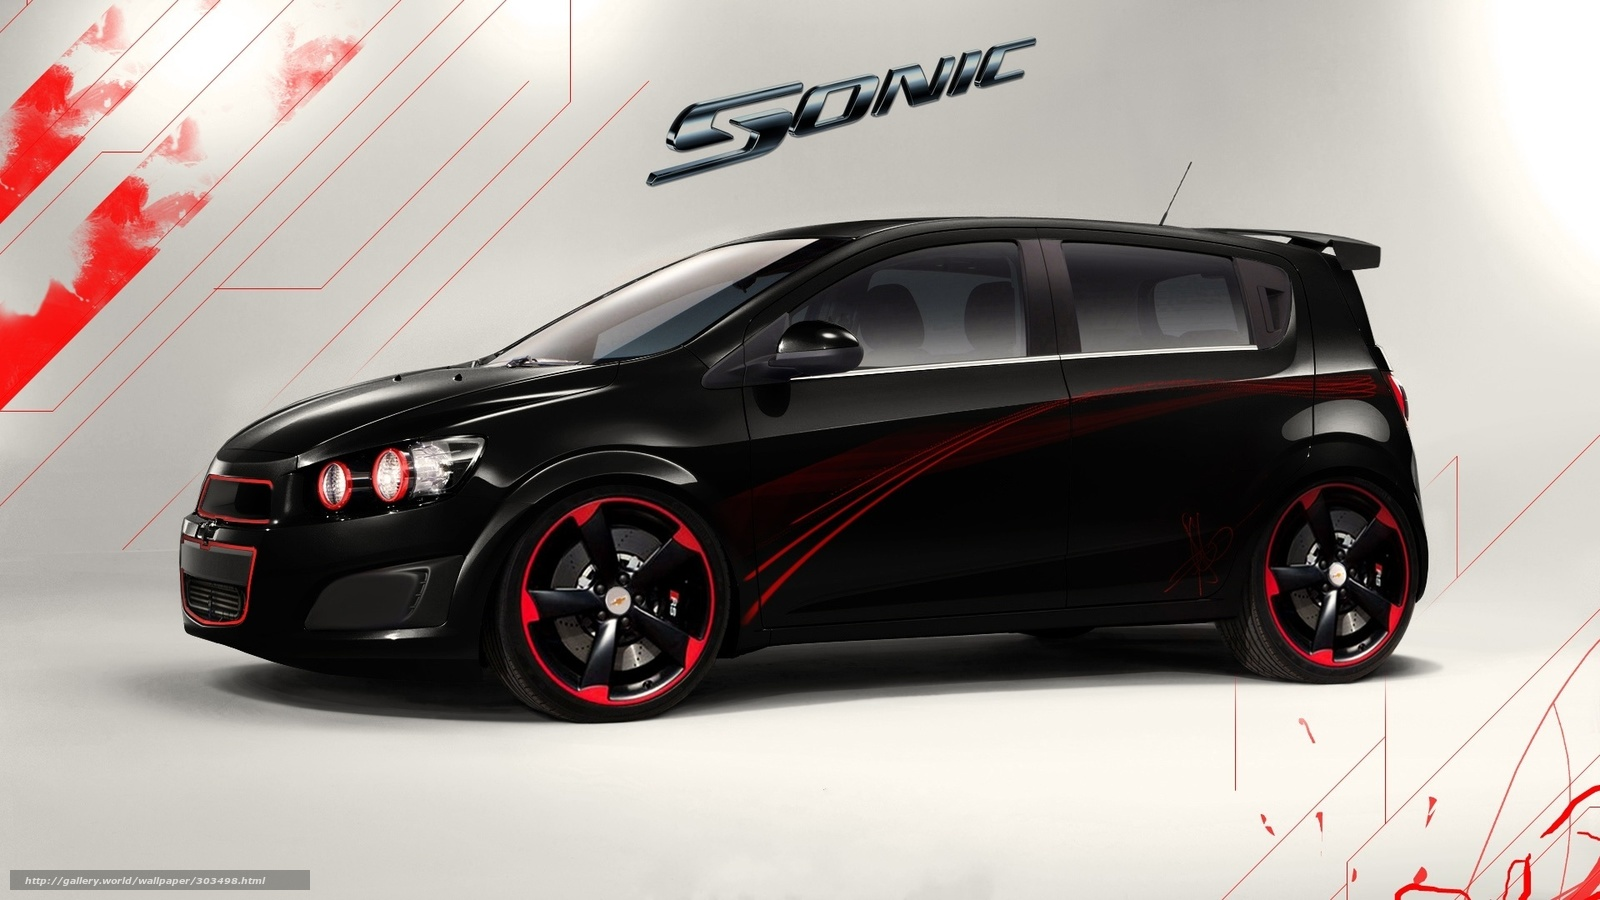 Chevy Sonic Custom >> 11 Chevrolet Vector Car Images - Car Silhouette Vector Free, Car Problem for Chevrolet Sonic and ...